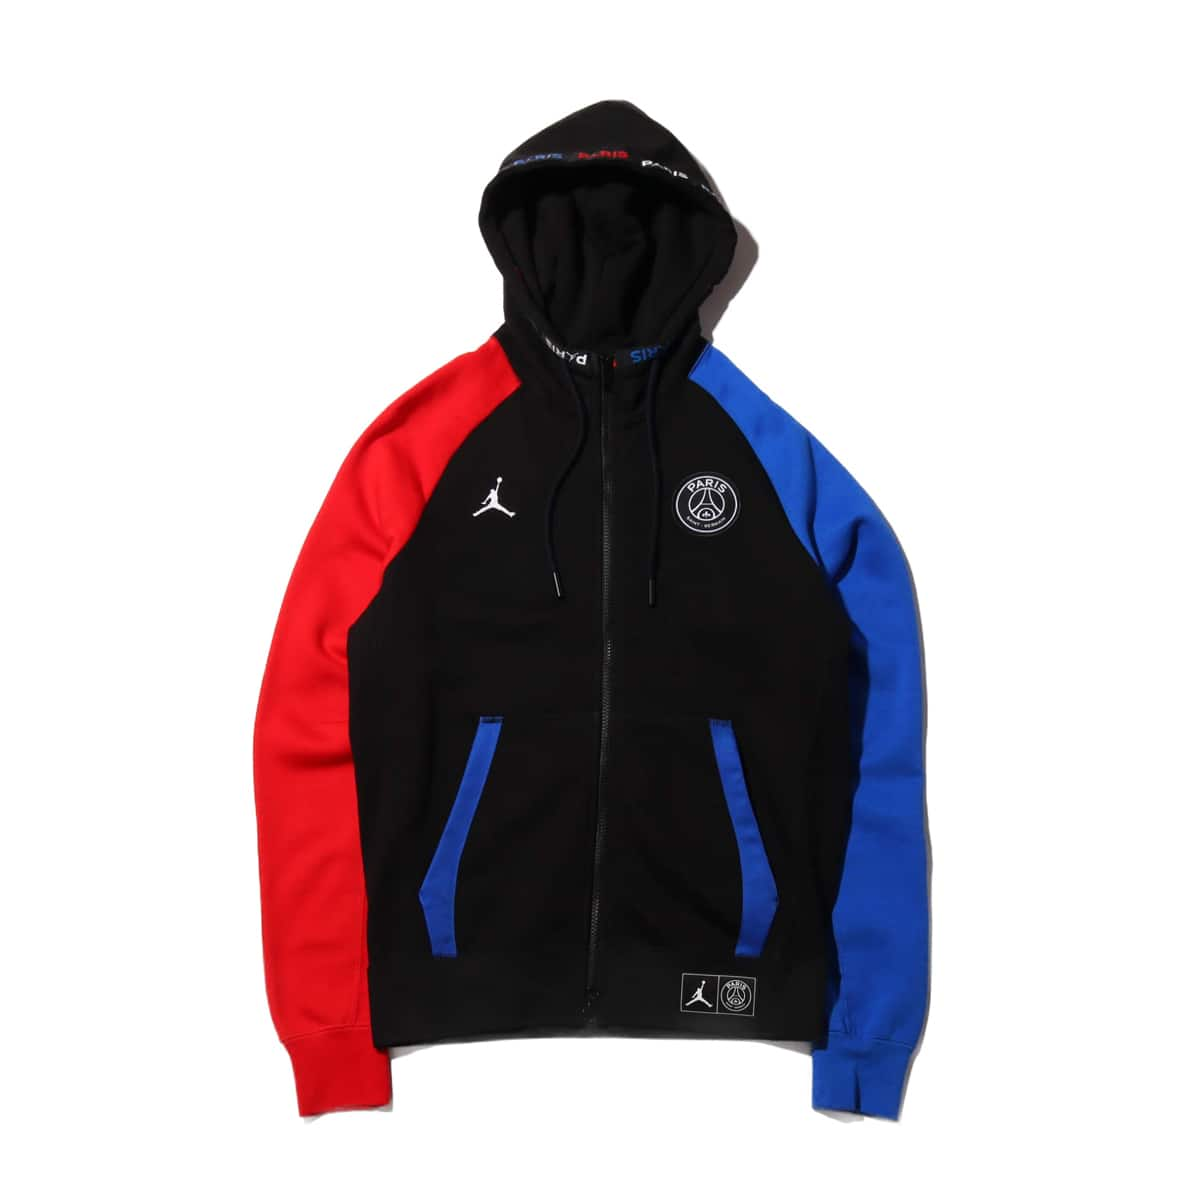 JORDAN BRAND AS M J PSG BC FLEECE FZ BLACK/HYPER COBALT/UNIVERSITY RED 20SP-S_photo_large